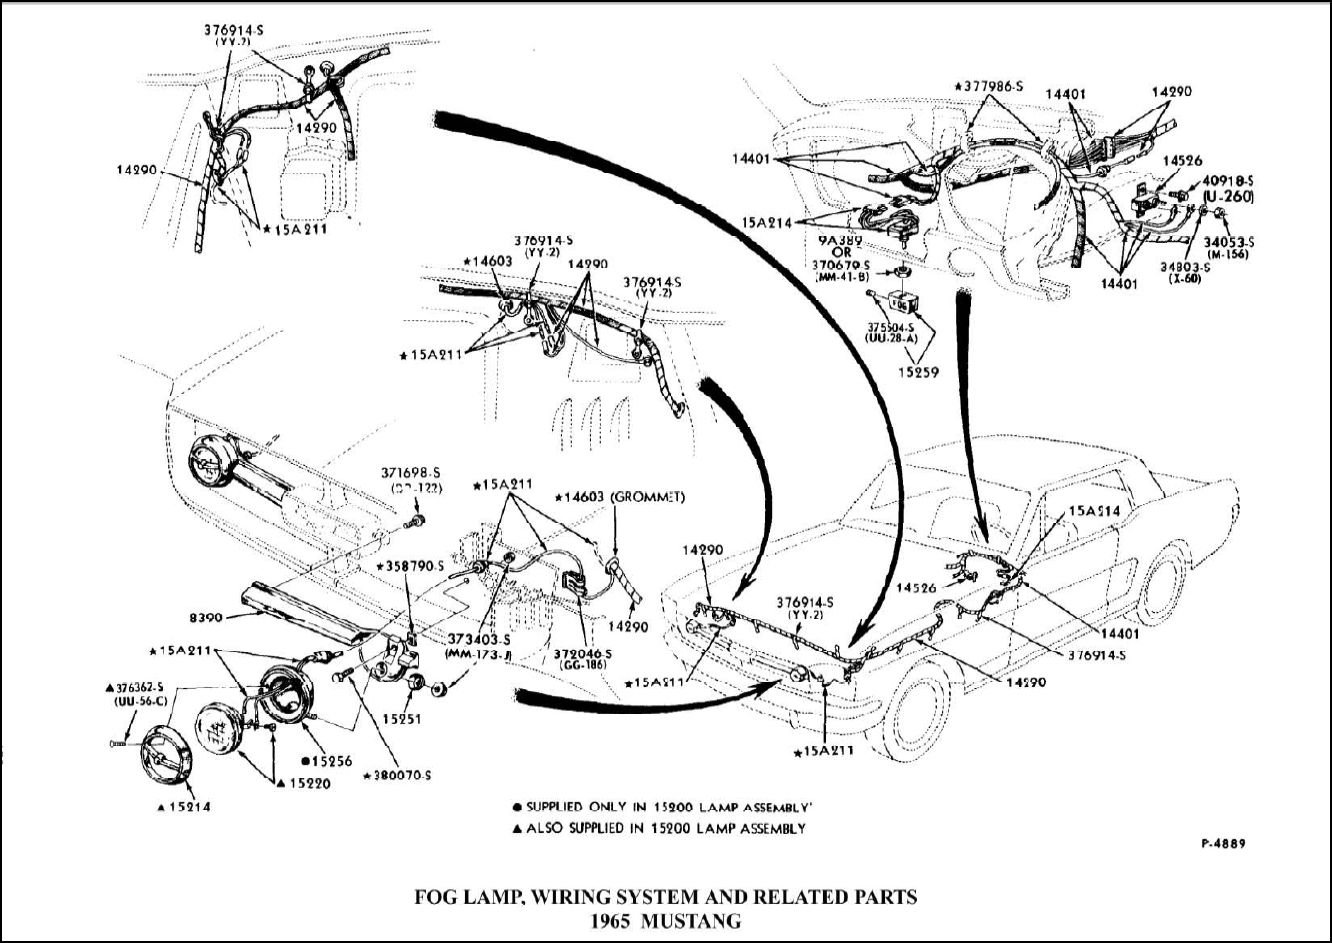 2008 Ford Mustang Fog Light Wiring Diagram • Wiring